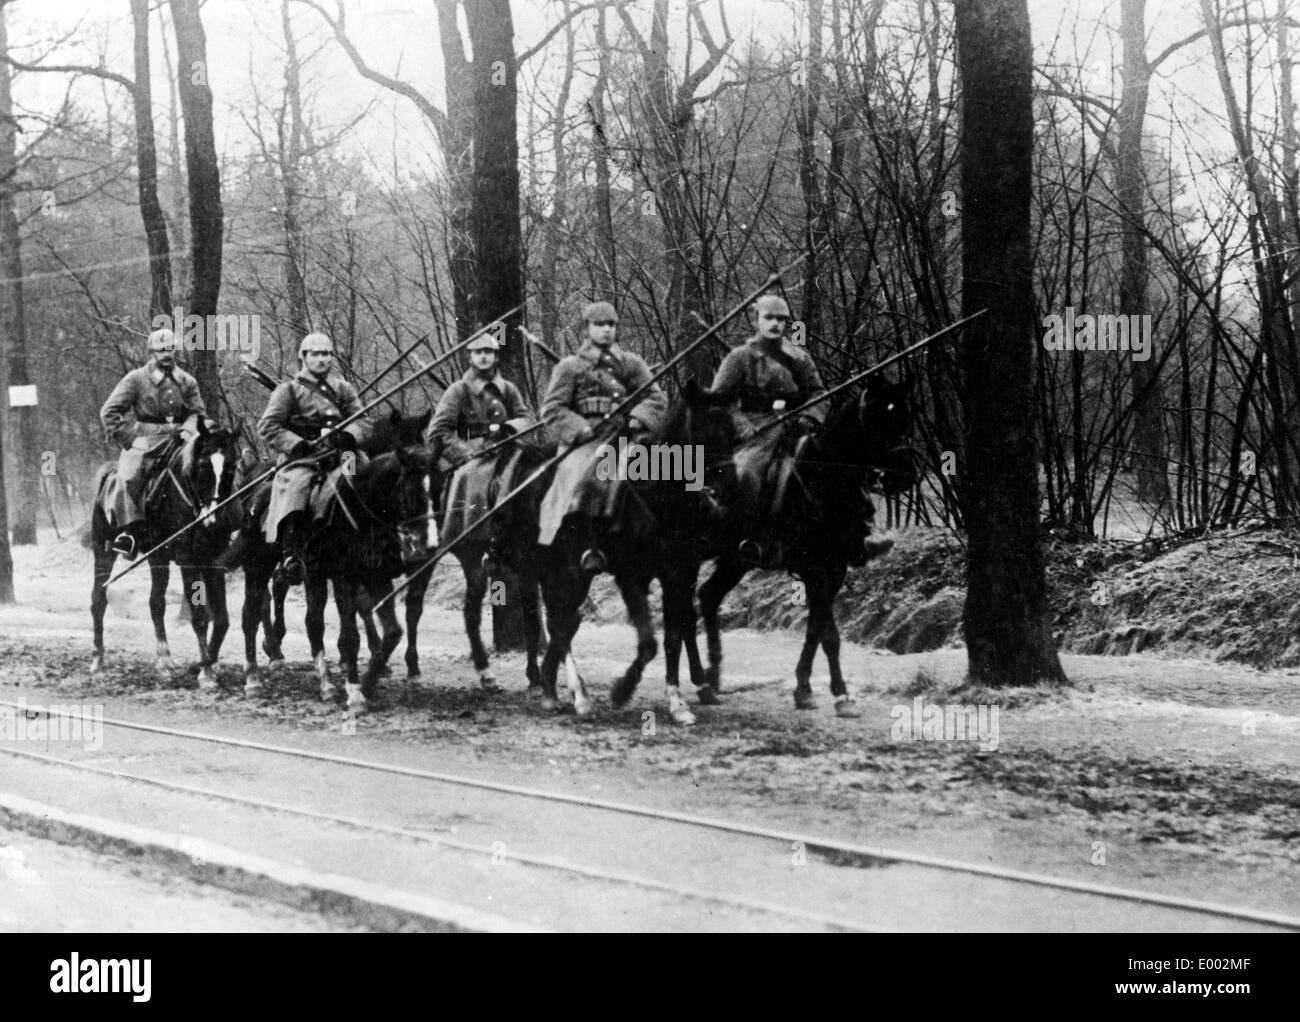 German cavalry in Northern France, 1914 - Stock Image